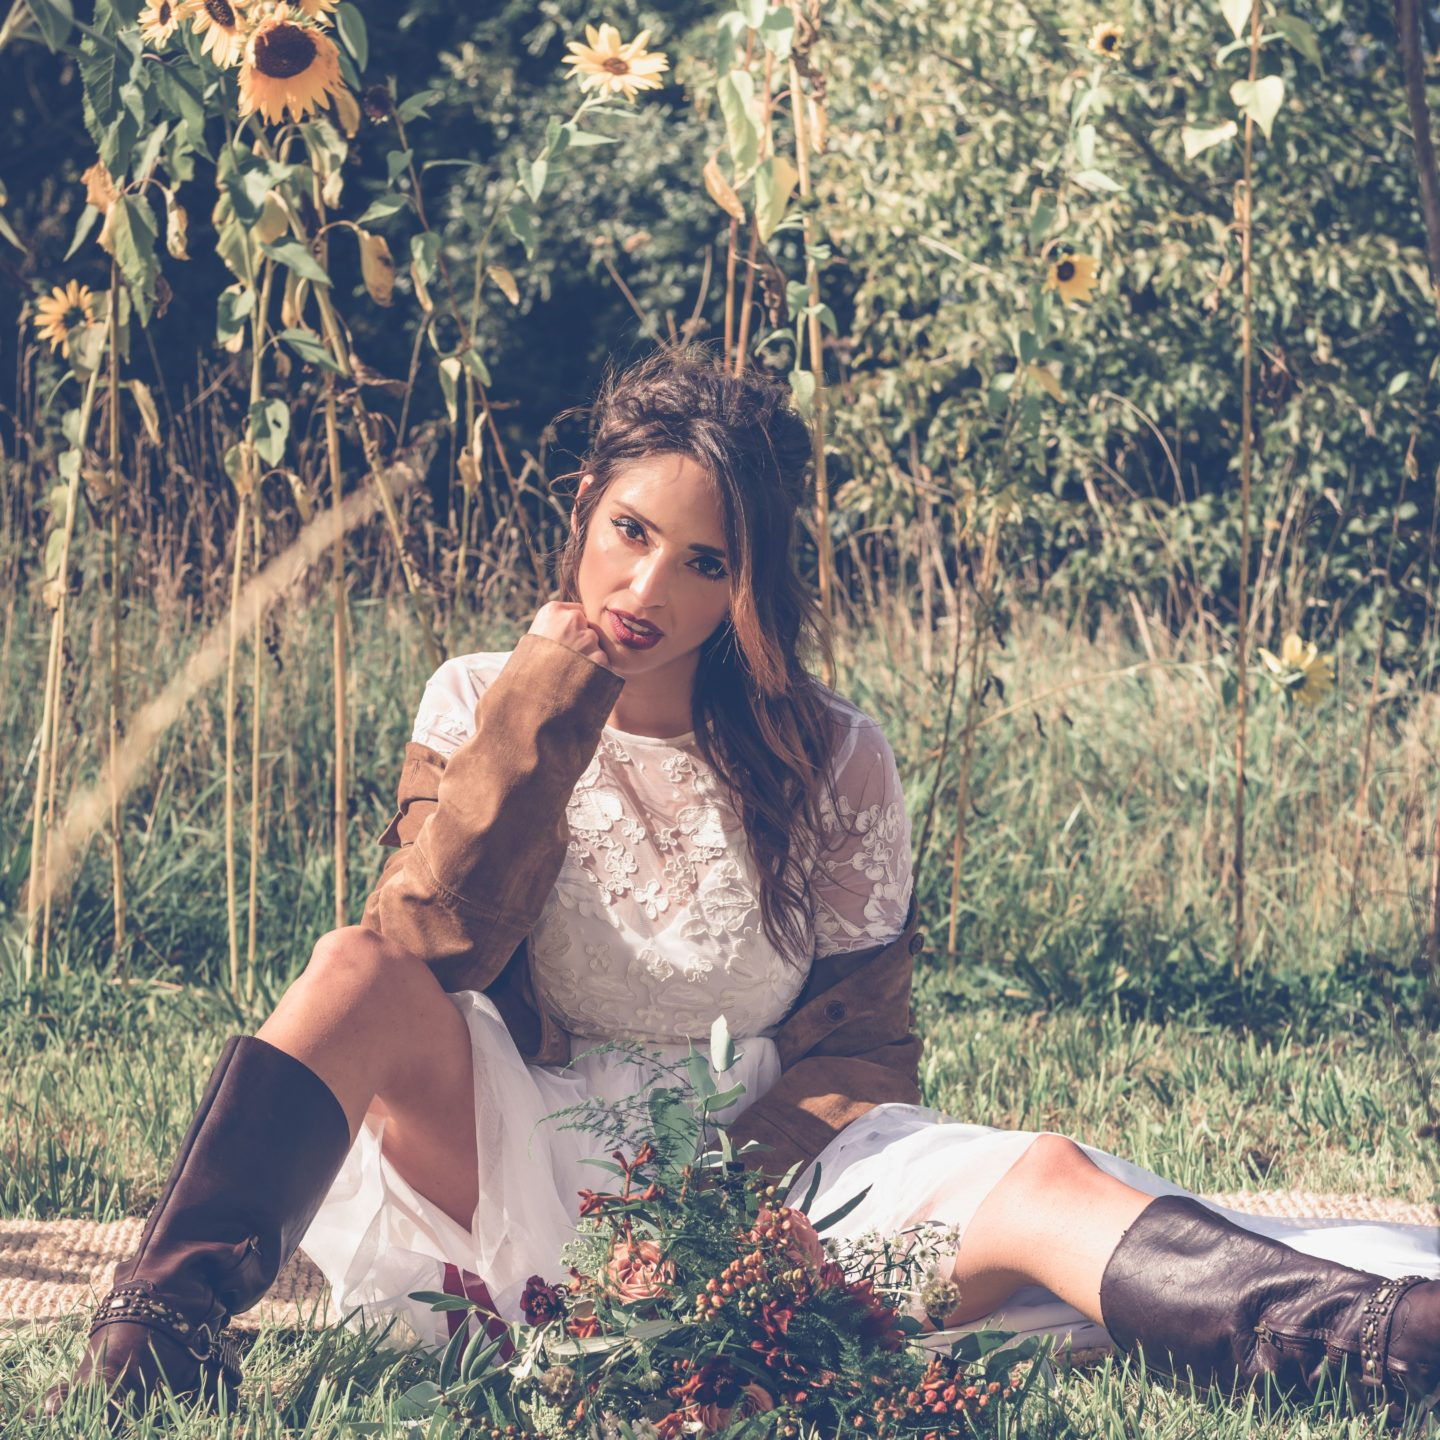 1970s Bohemian Bridal Inspiration With Field Flower Bouquets Cowboy Boots and Suede Jackets